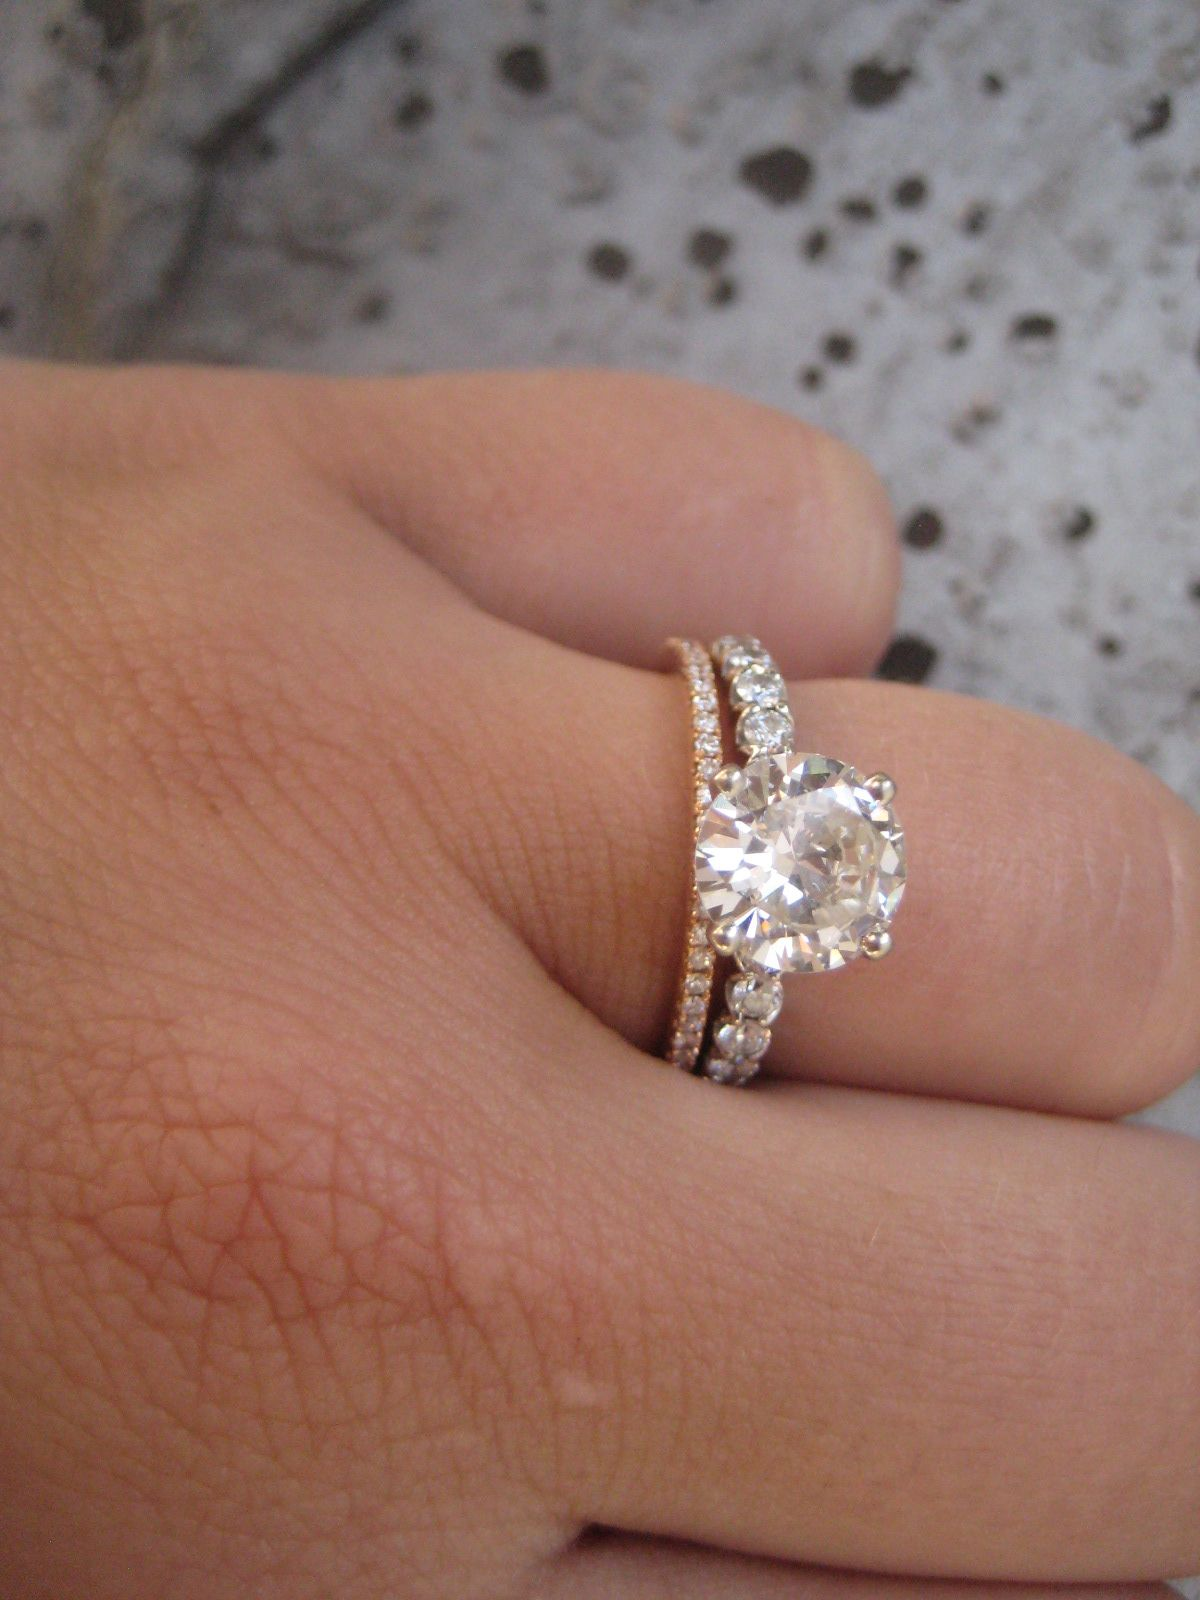 Rose Gold Wedding Band, Love And WANT! I Love The Idea Of A Platinum  Engagement With A Rose Gold Diamond Wedding Band